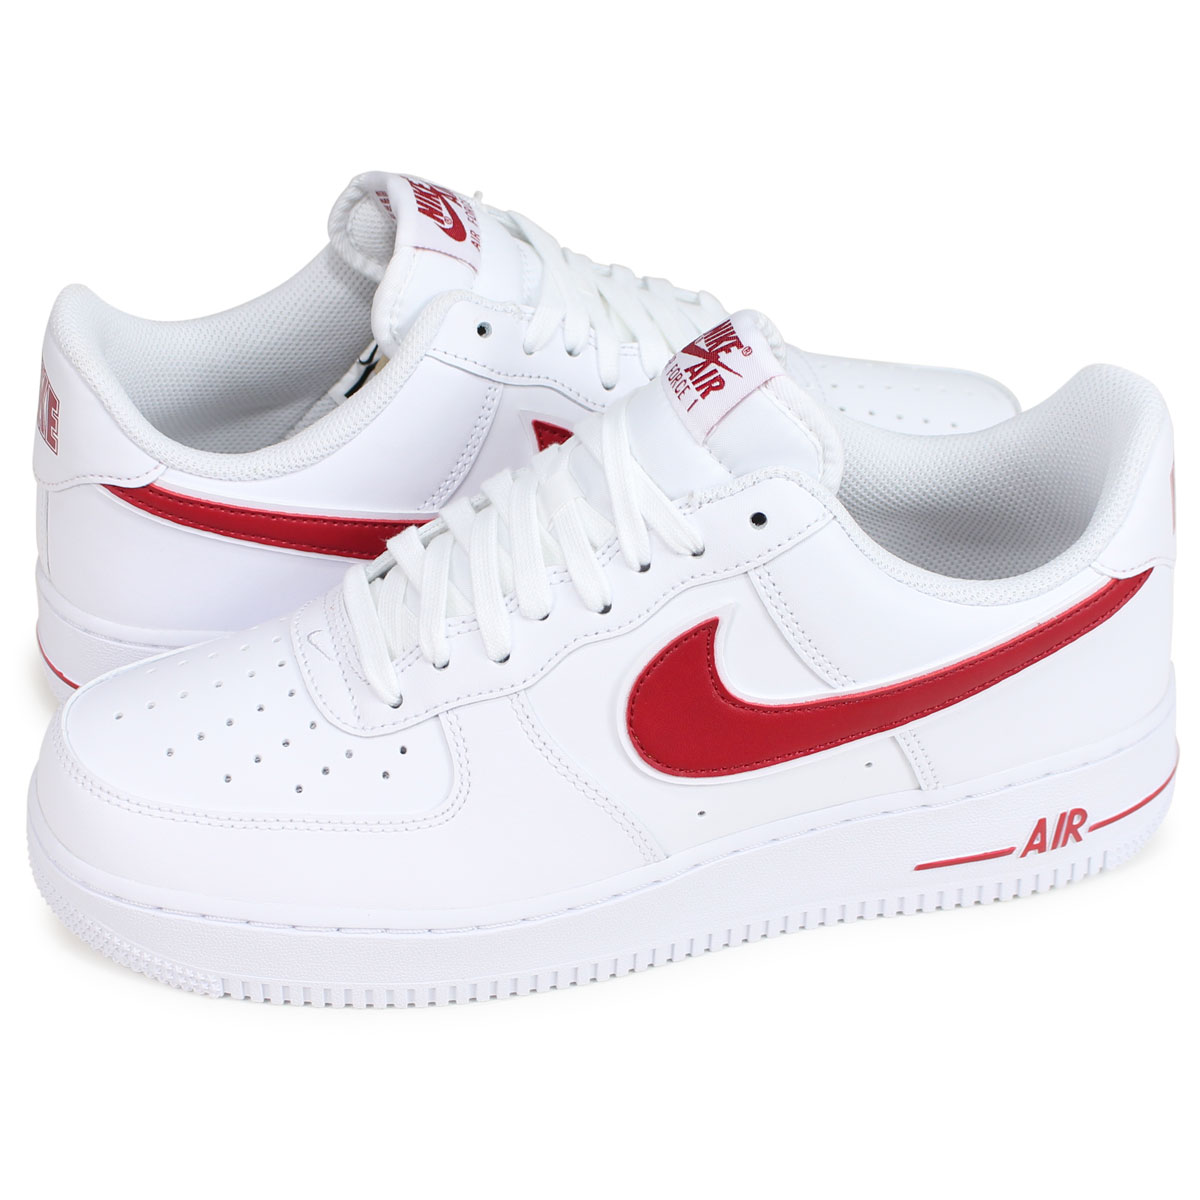 timeless design 95845 5ed51 Nike NIKE air force 1 sneakers men AIR FORCE 1 07 3 white AO2423-102 ...